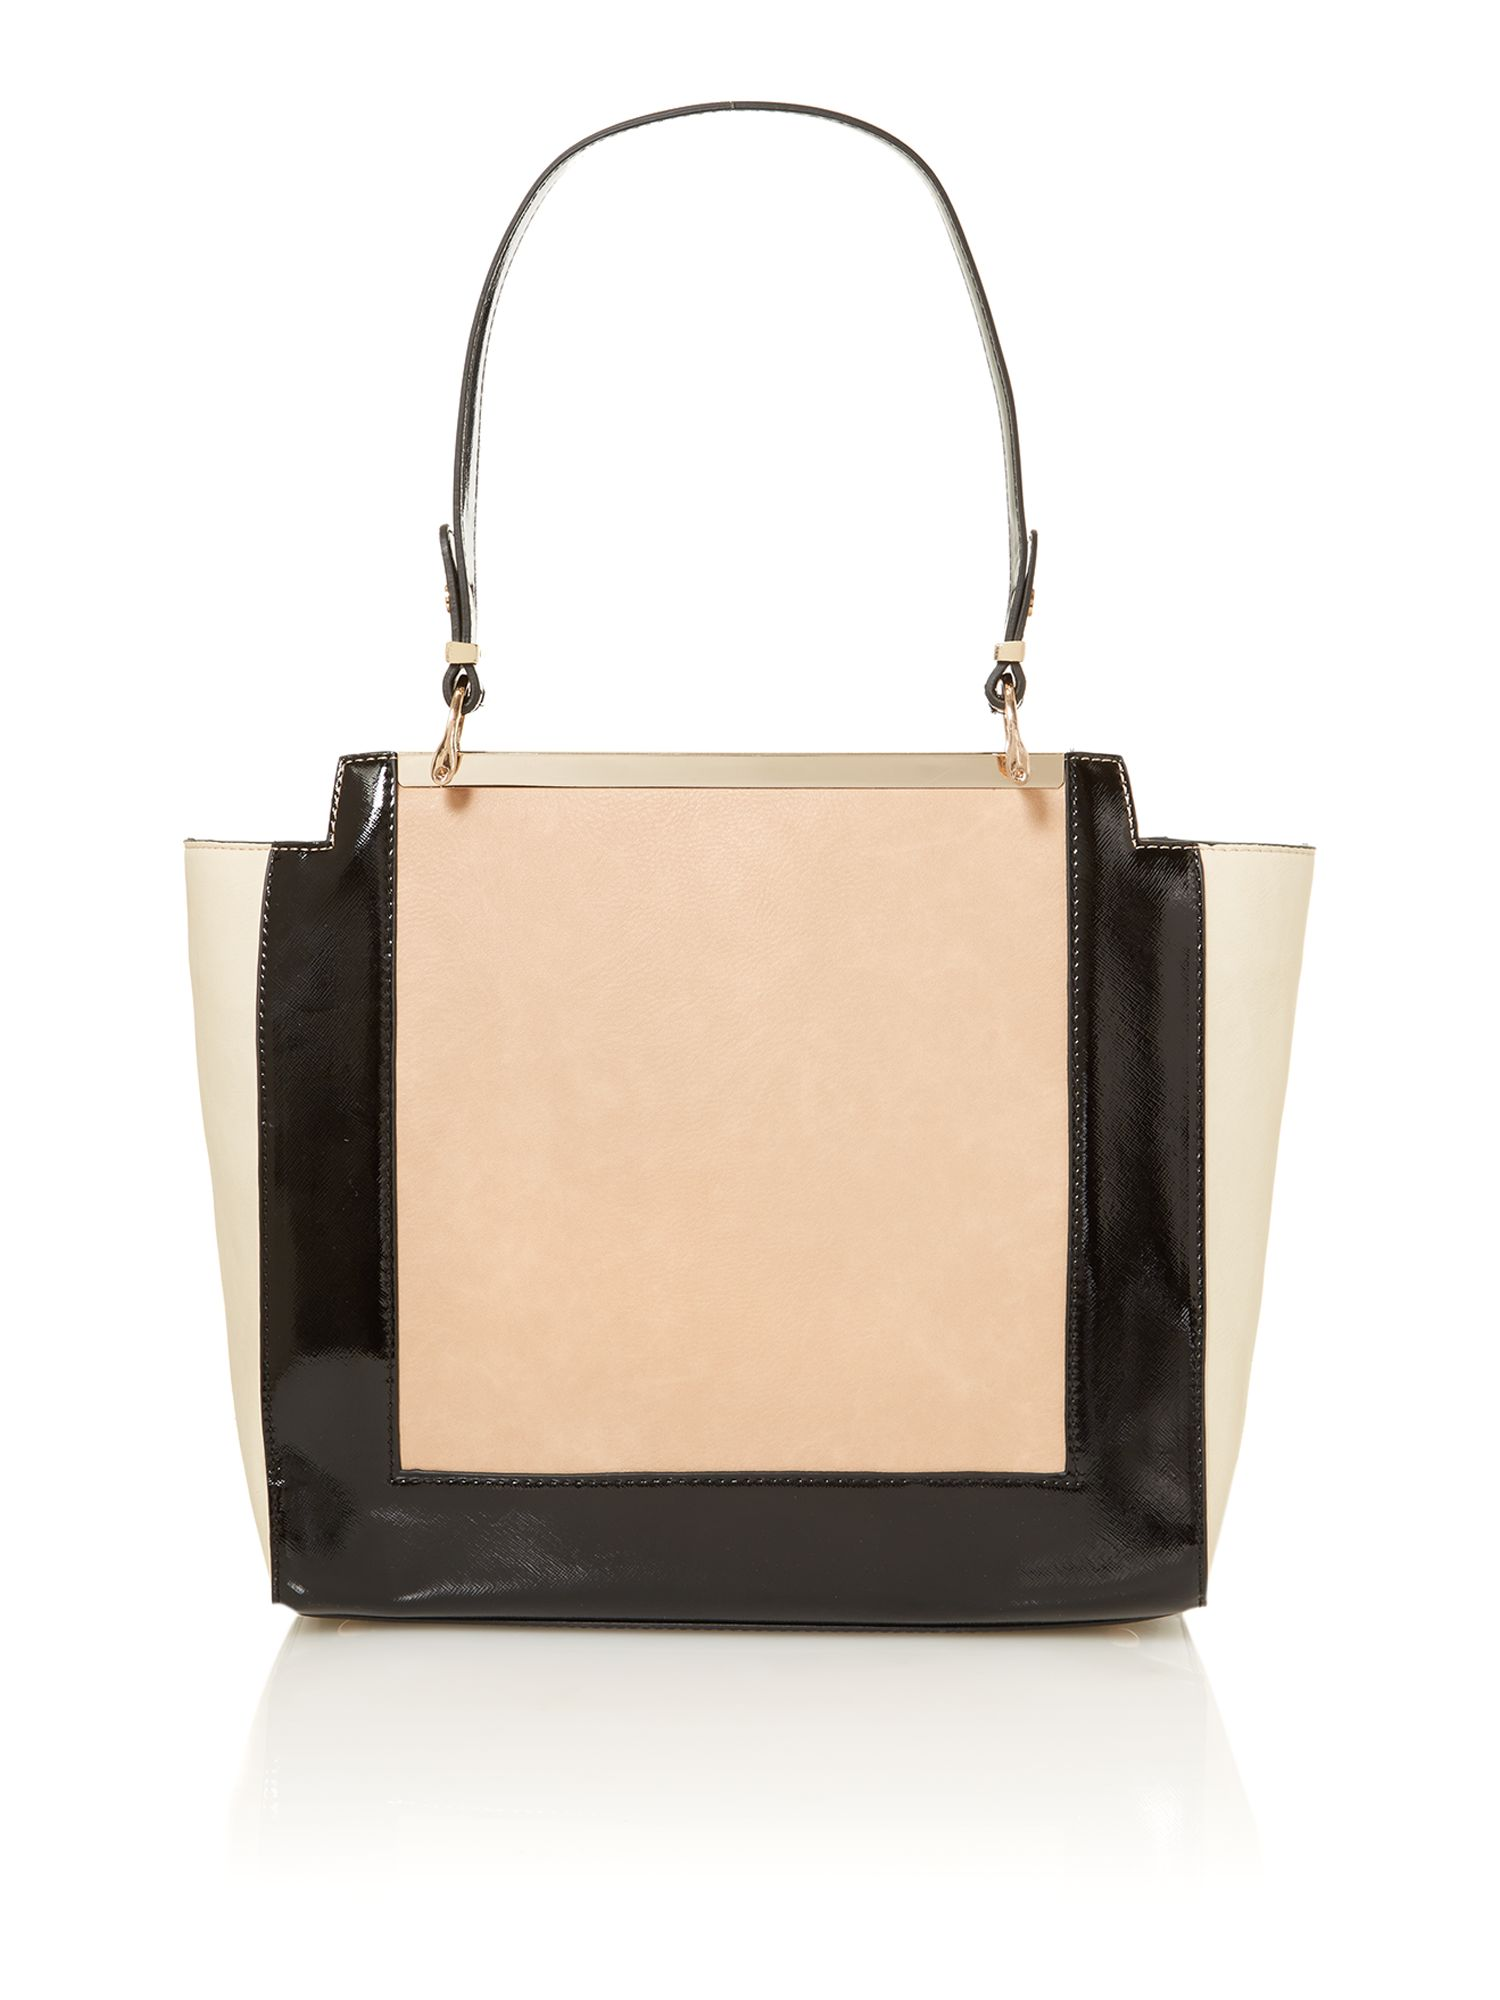 Black and nude large tote bag